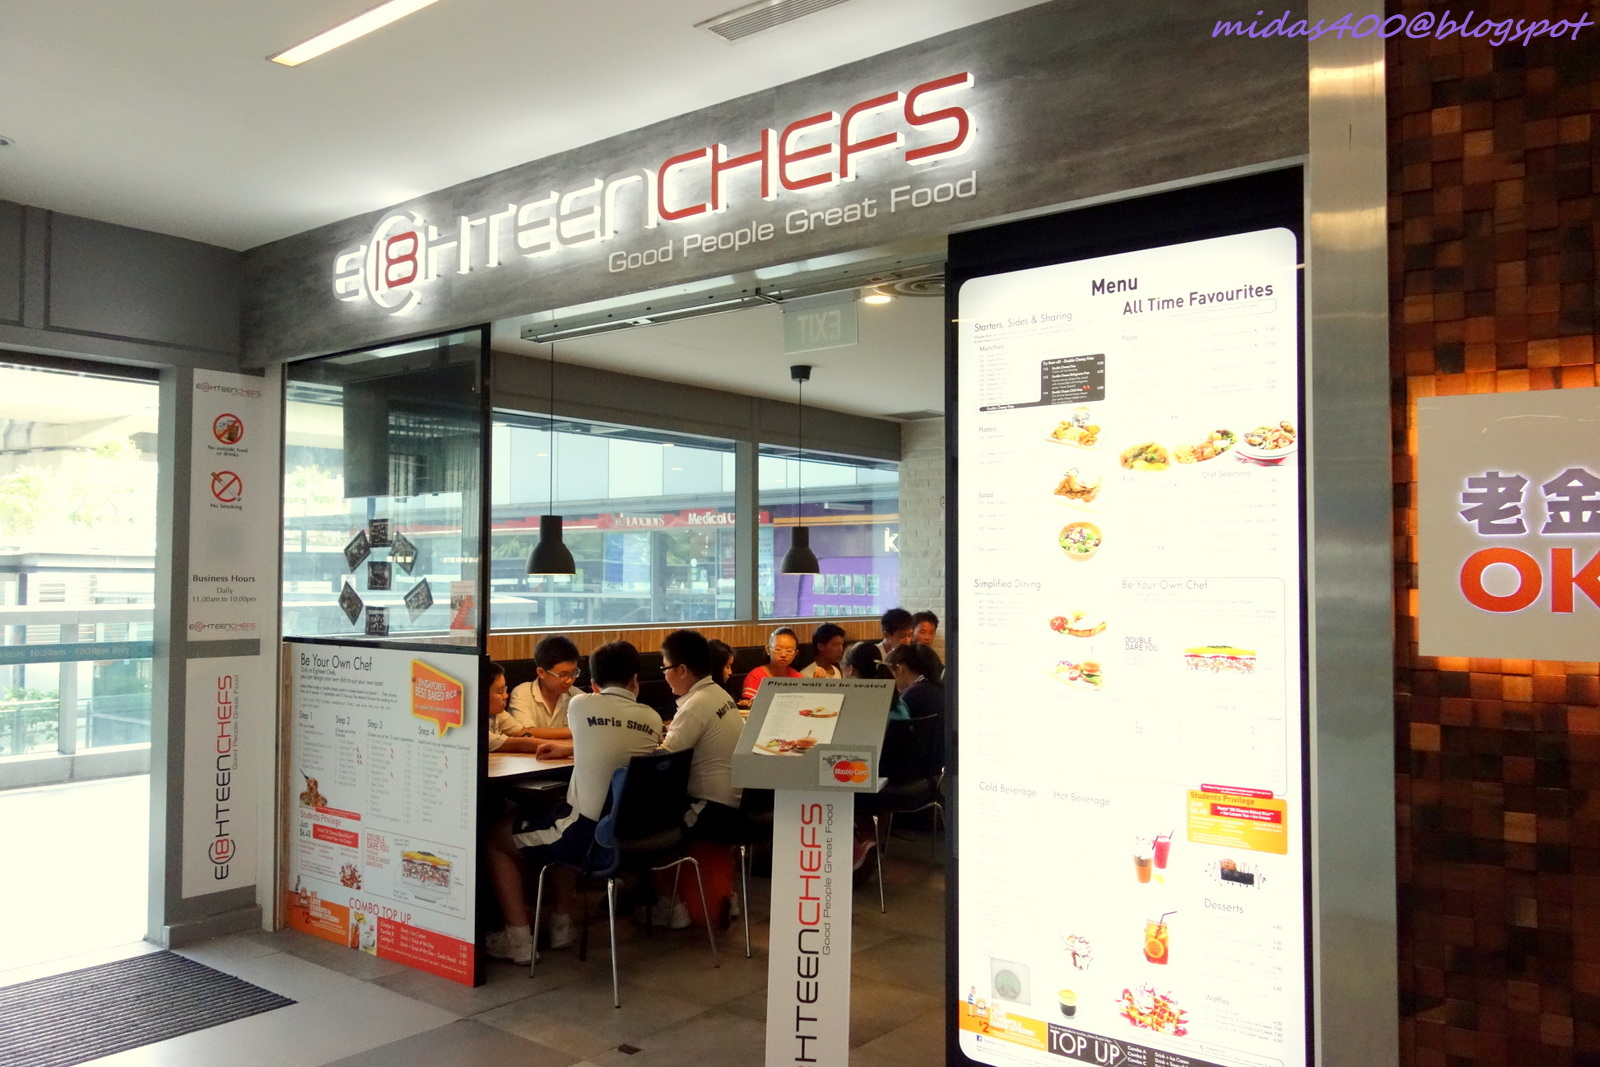 Food review eighteen chefs singapore -  Was Keen To Try But It Always Has A Long Queue During Meal Times My Opportunity Came When I Was On Leave And Had An Appointment To Fix My Hair At Nex